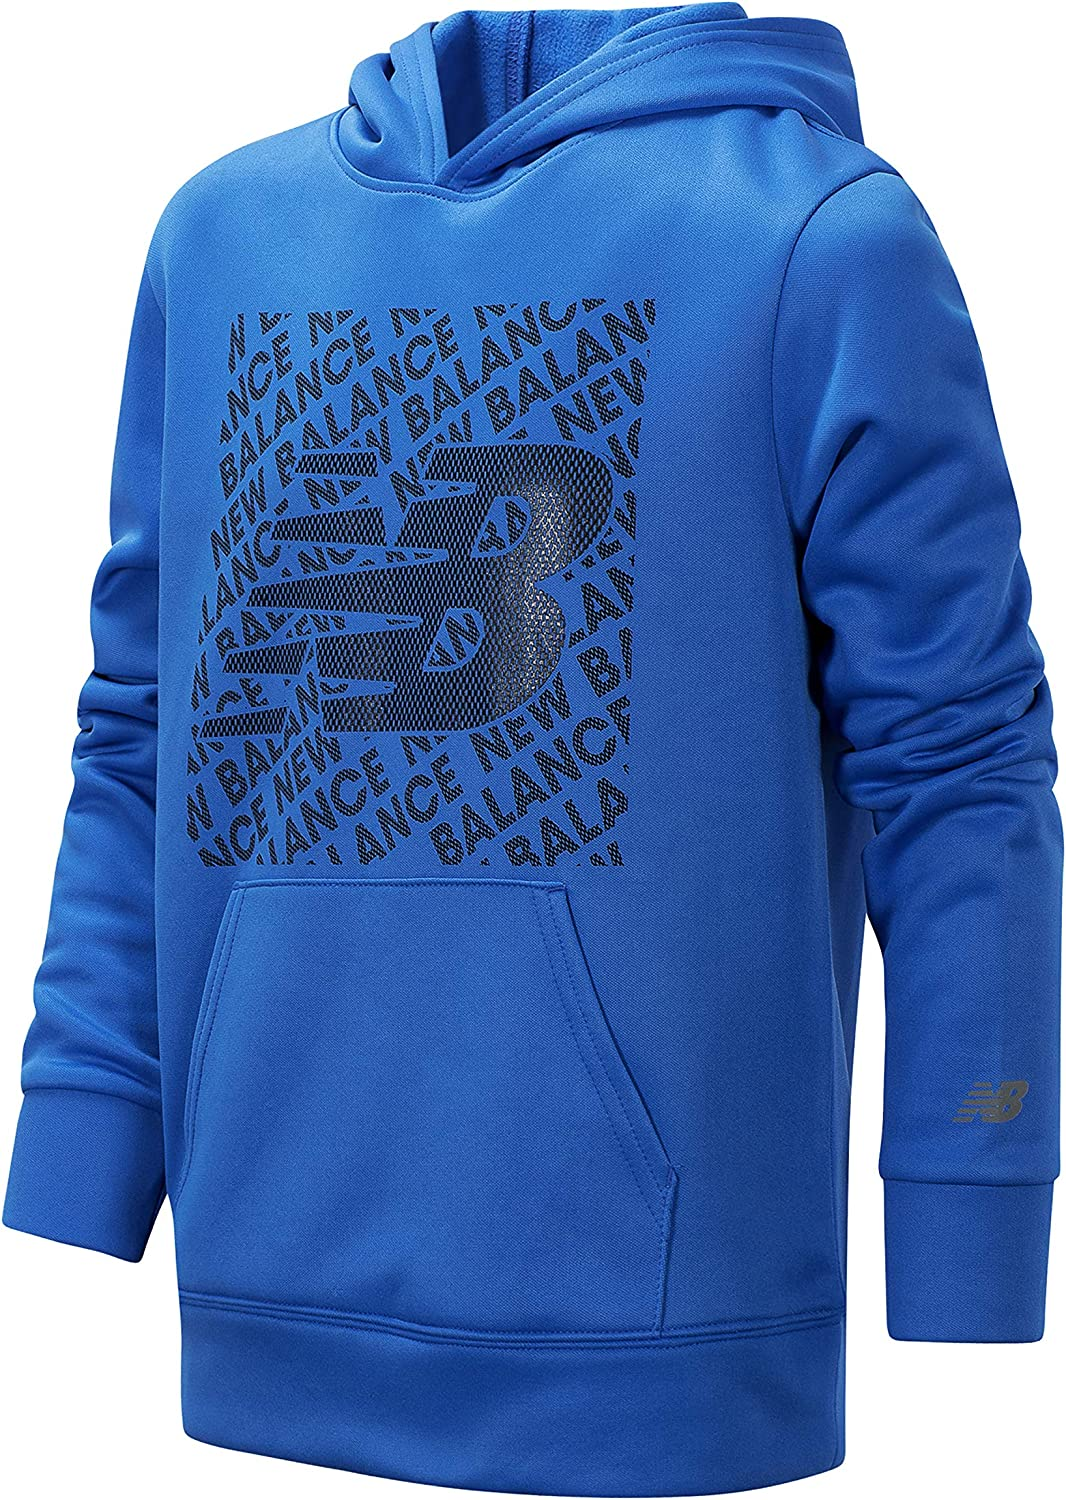 Active Performance Hoodie Pullover Sweatshirt with Graphic: Clothing